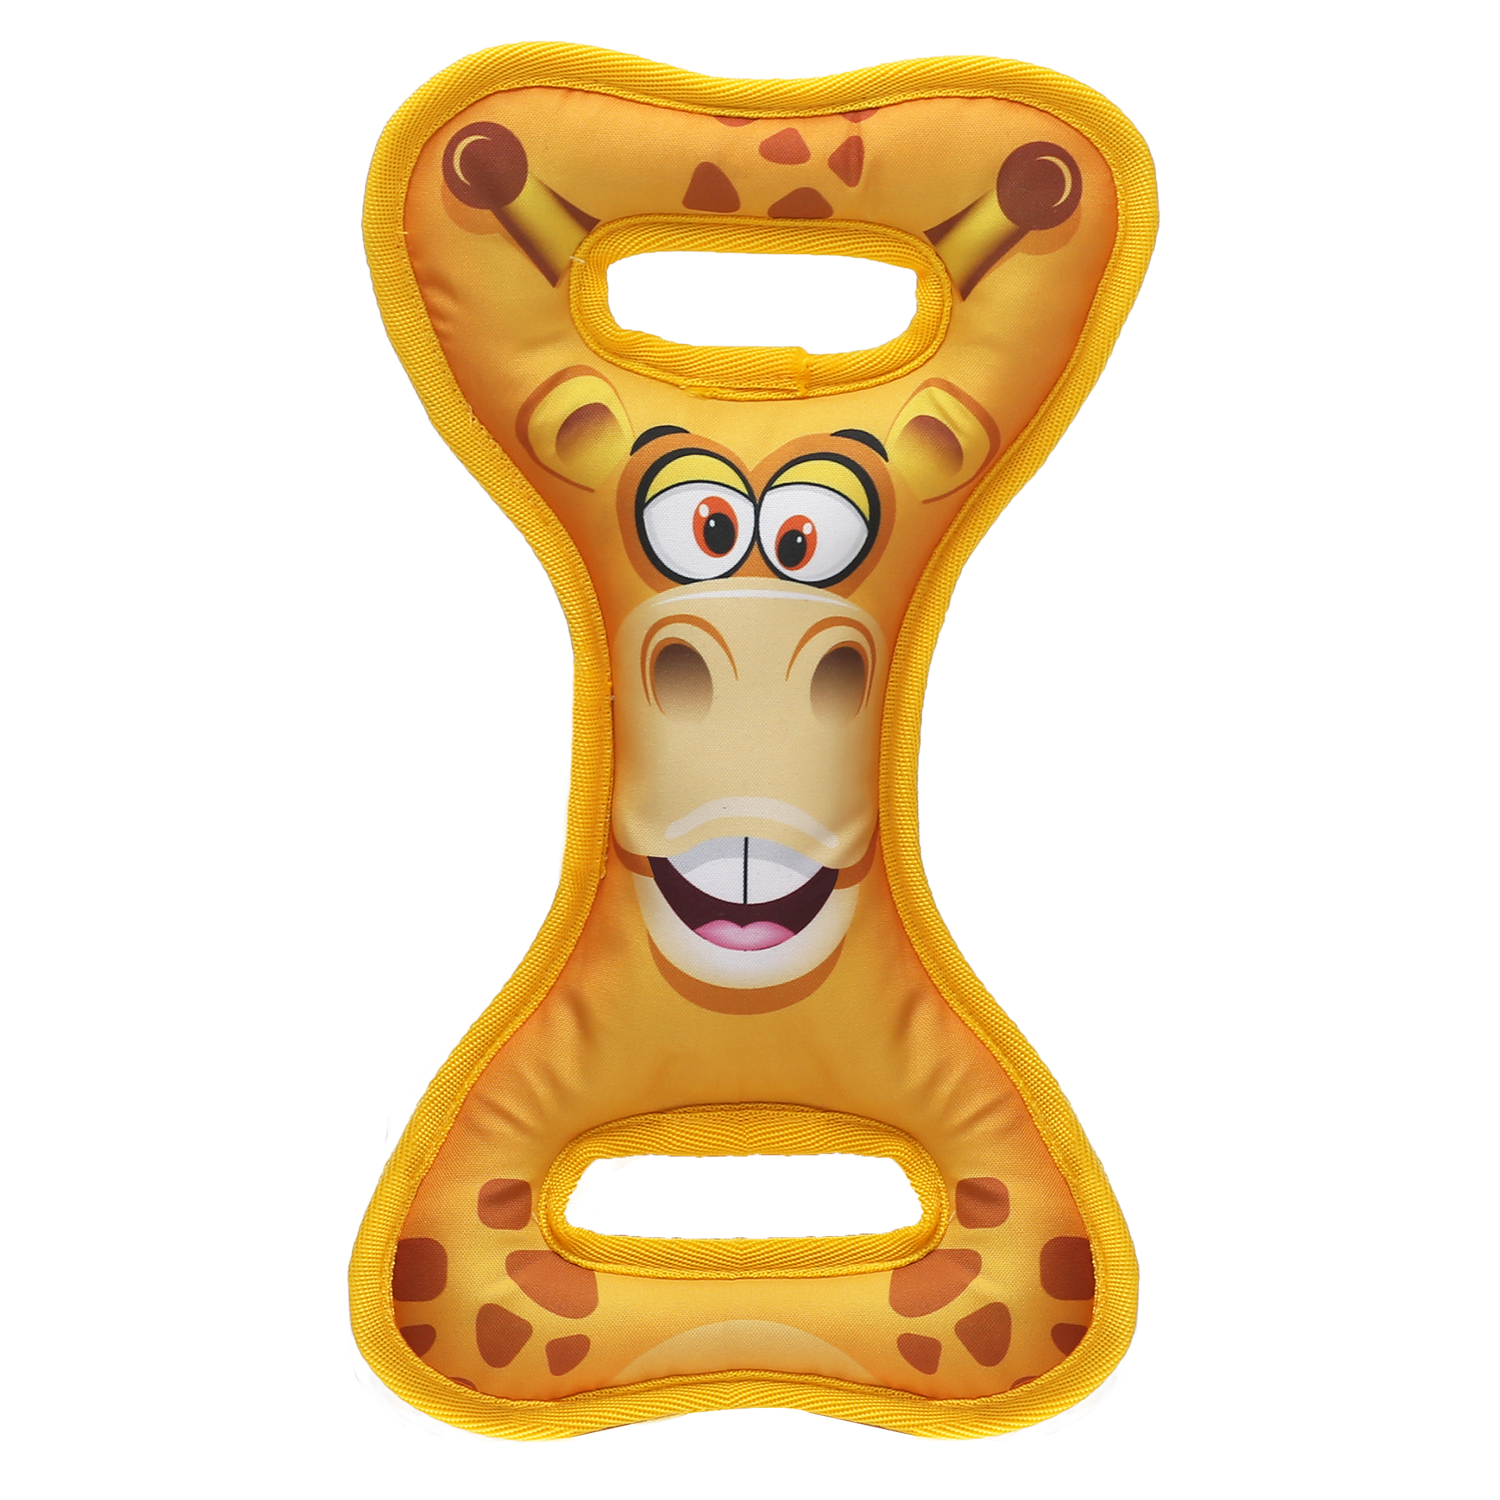 Happy Tails Loonies Tug N Play Durable Dog Toy - Giraffe